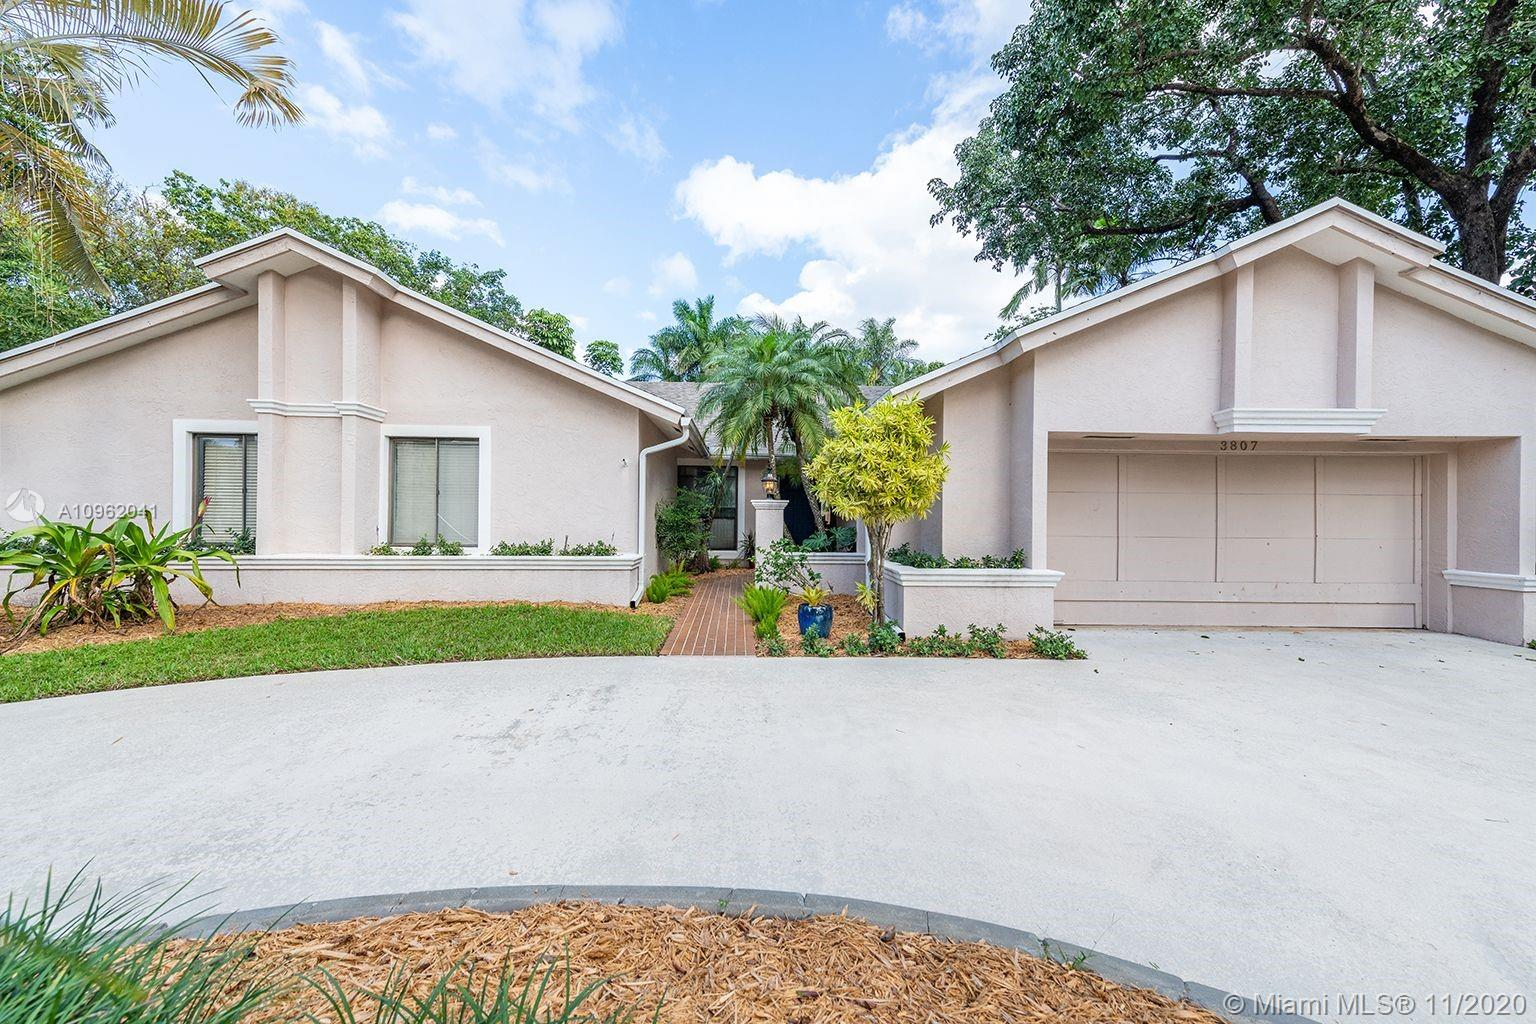 Beautiful home in sought after neighborhood of Rock Creek! In family oriented Cooper City with all A+ schools!! 4 bedrooms, 3 baths, plus office! 15,000 sq ft corner lot! Low HOA only $165 a quarter! Roof only 4 years old!! Nicely maintained granite countertops, kitchen has mosaic tile backsplash, and separate utility room. Huge yard with brand NEW fence and pool with a cabana bathroom! Home features vaulted ceilings with laminate and tile floors! Stainless steel appliances and 2 a/c units! Come and see, WON'T LAST!